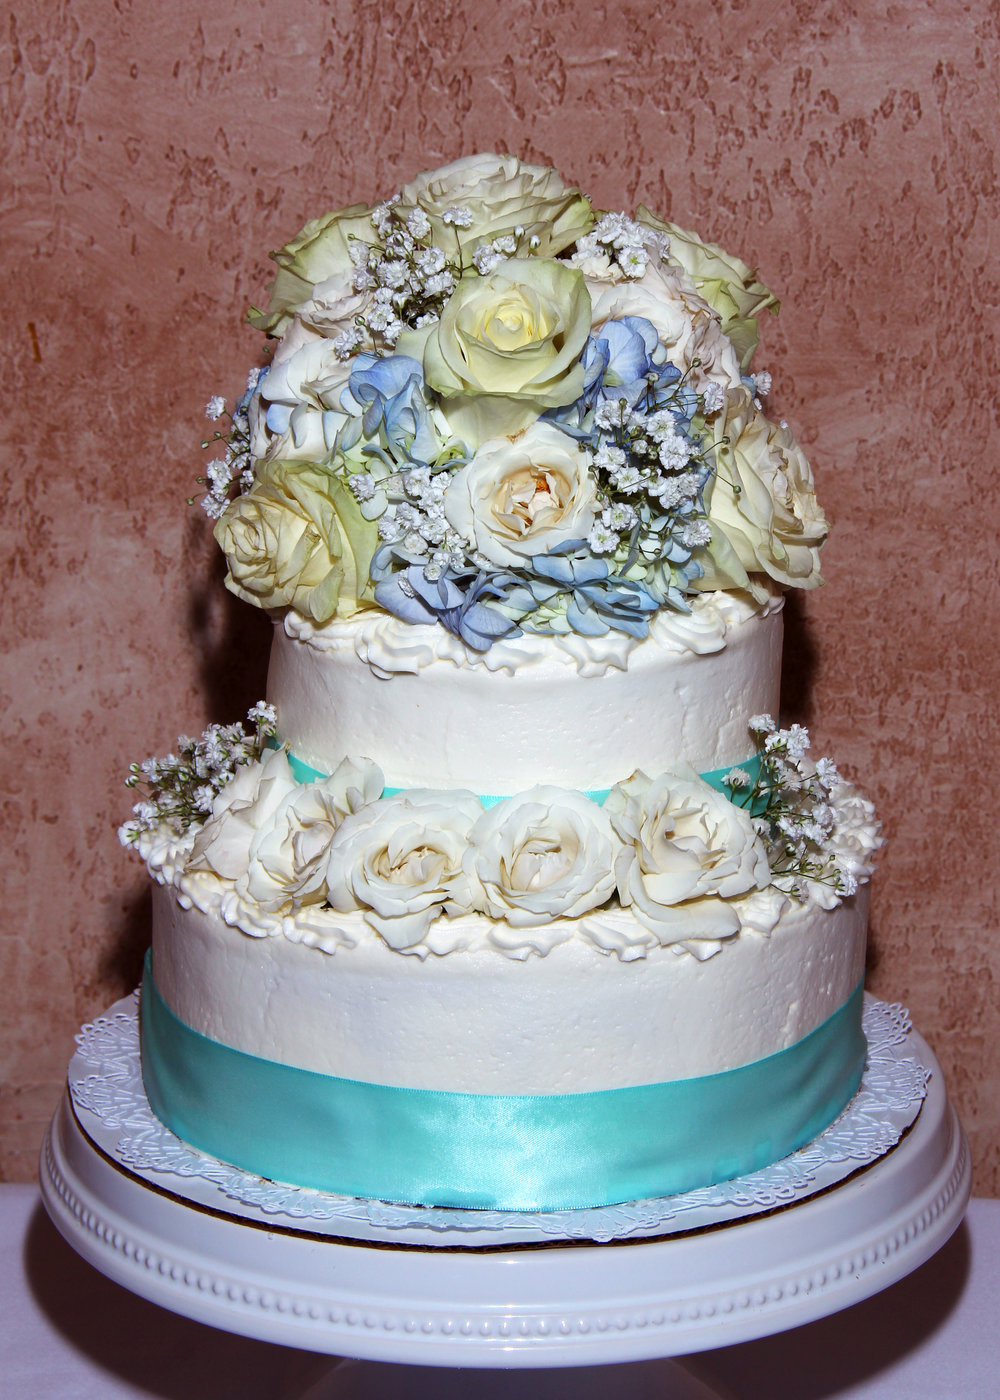 blue and white flowers on a wedding cake hilton head